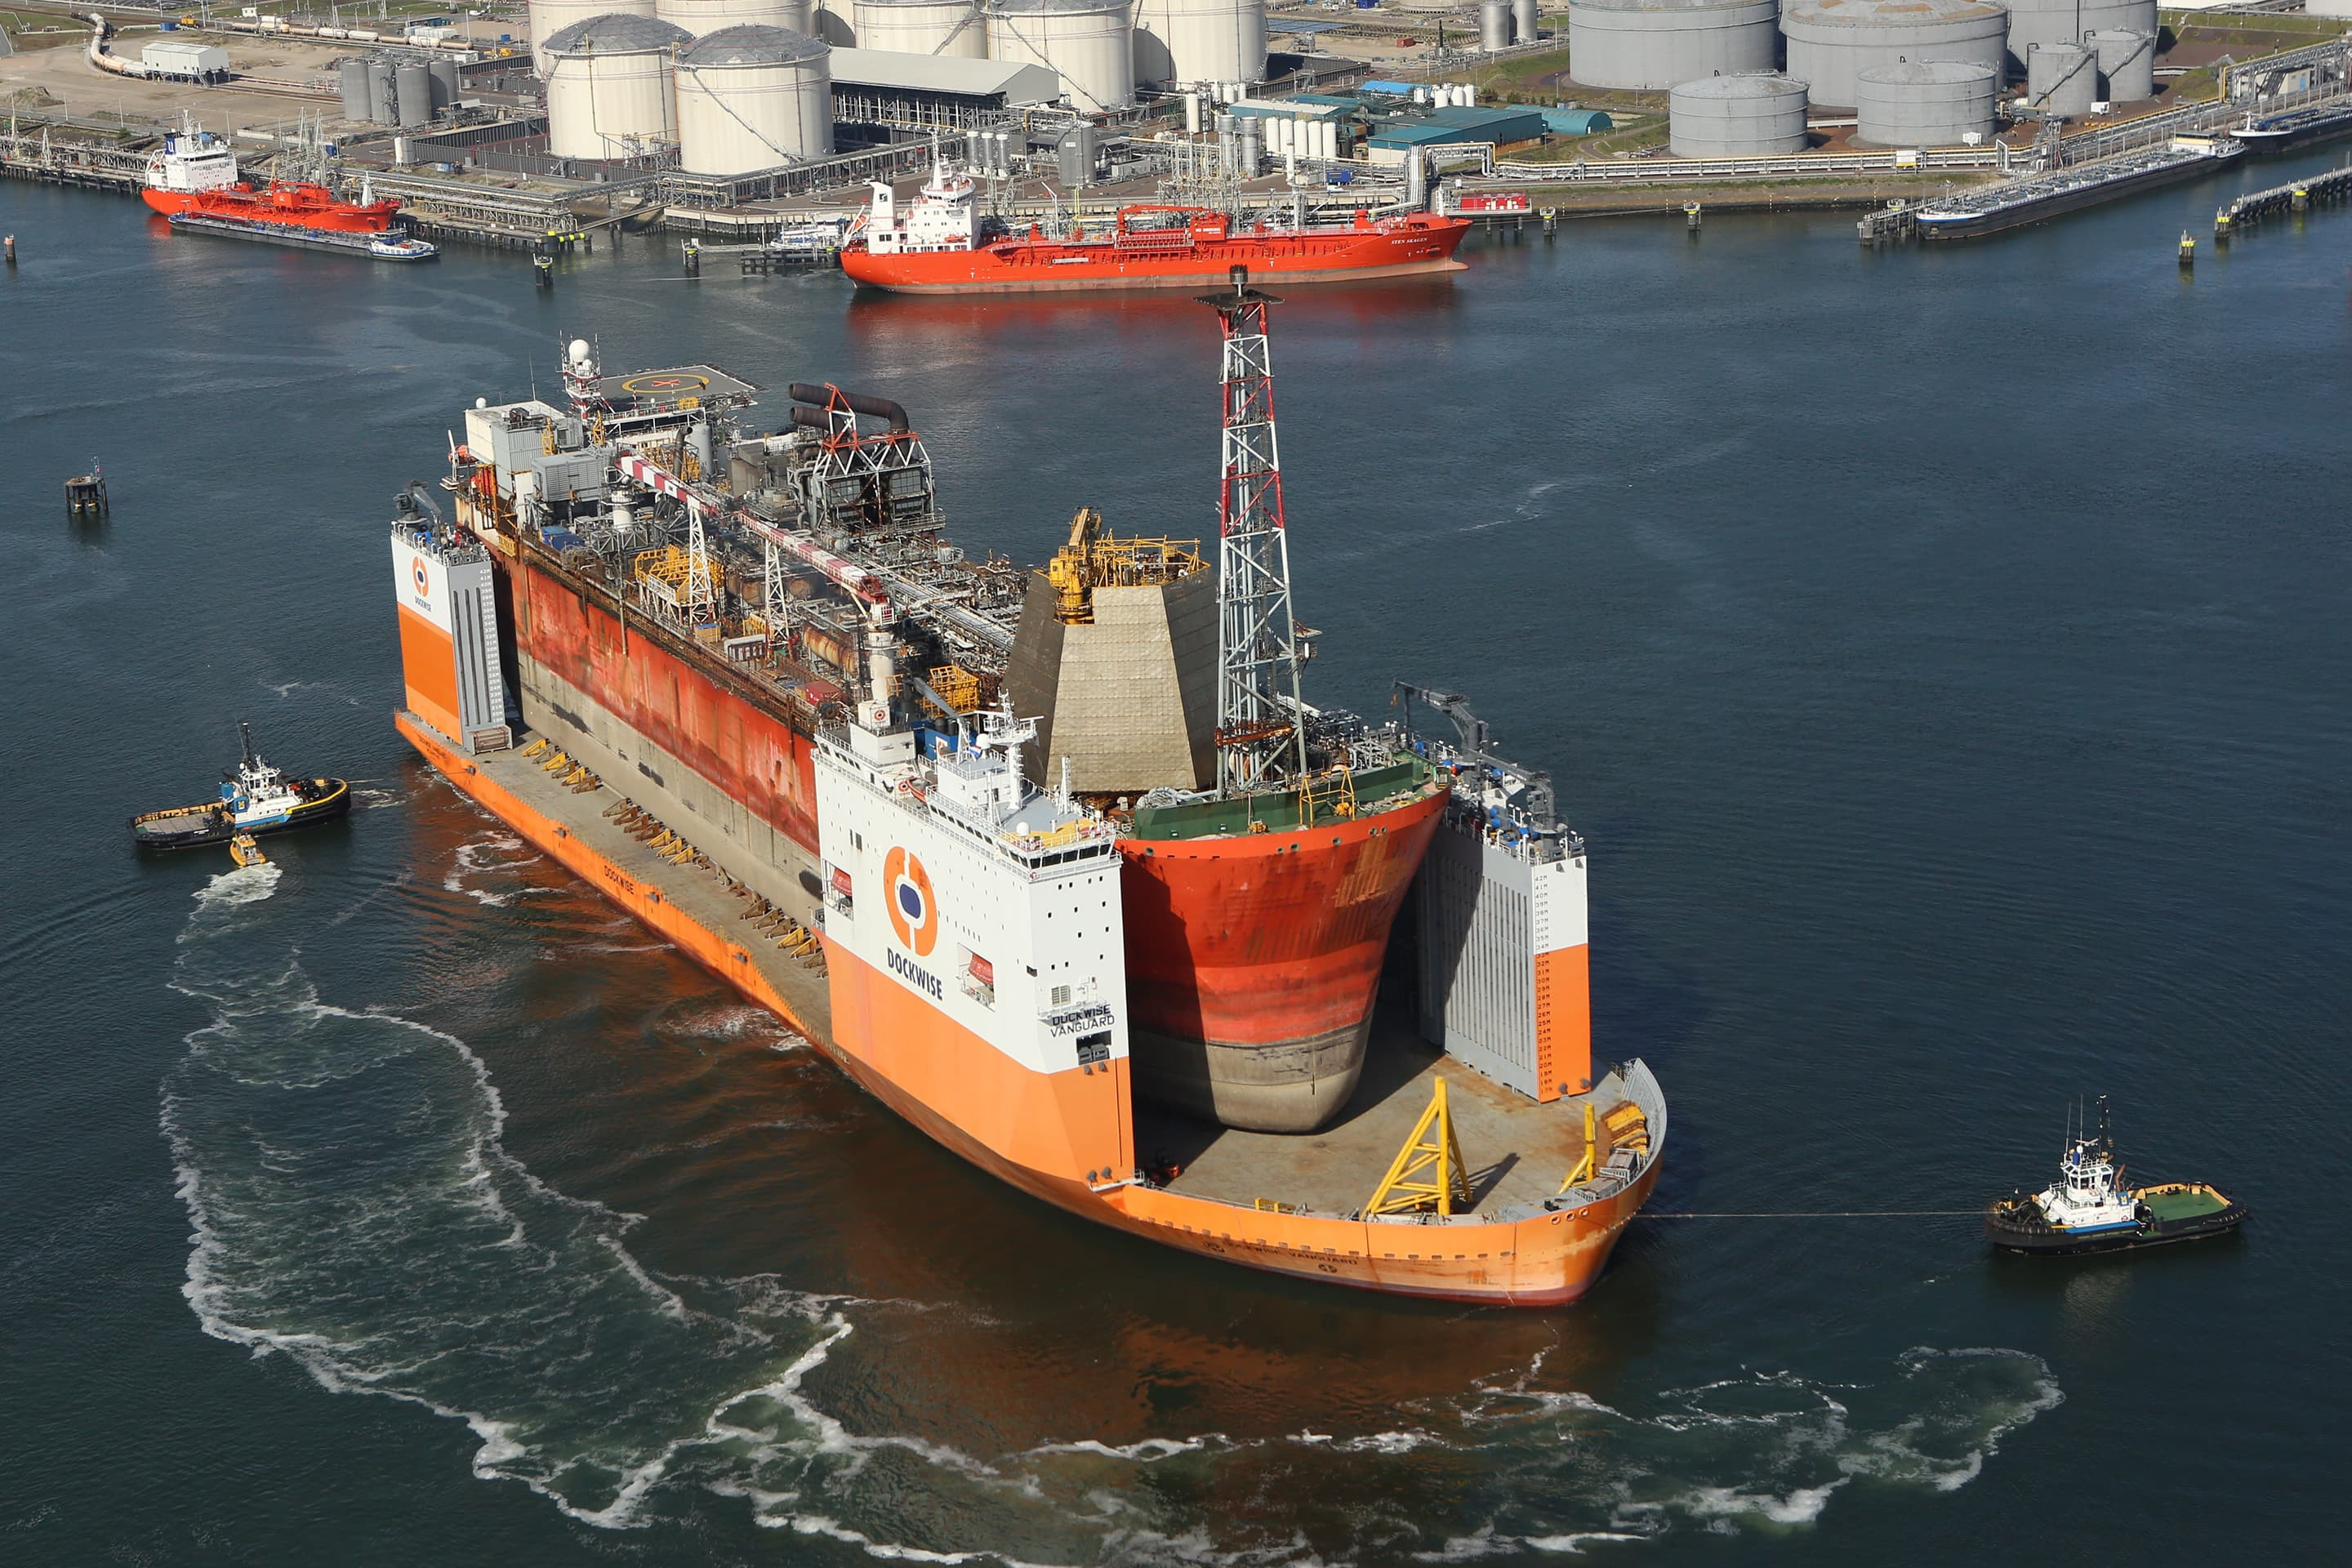 The Dockwise Vanguard sets sail to Batam, Indonesia